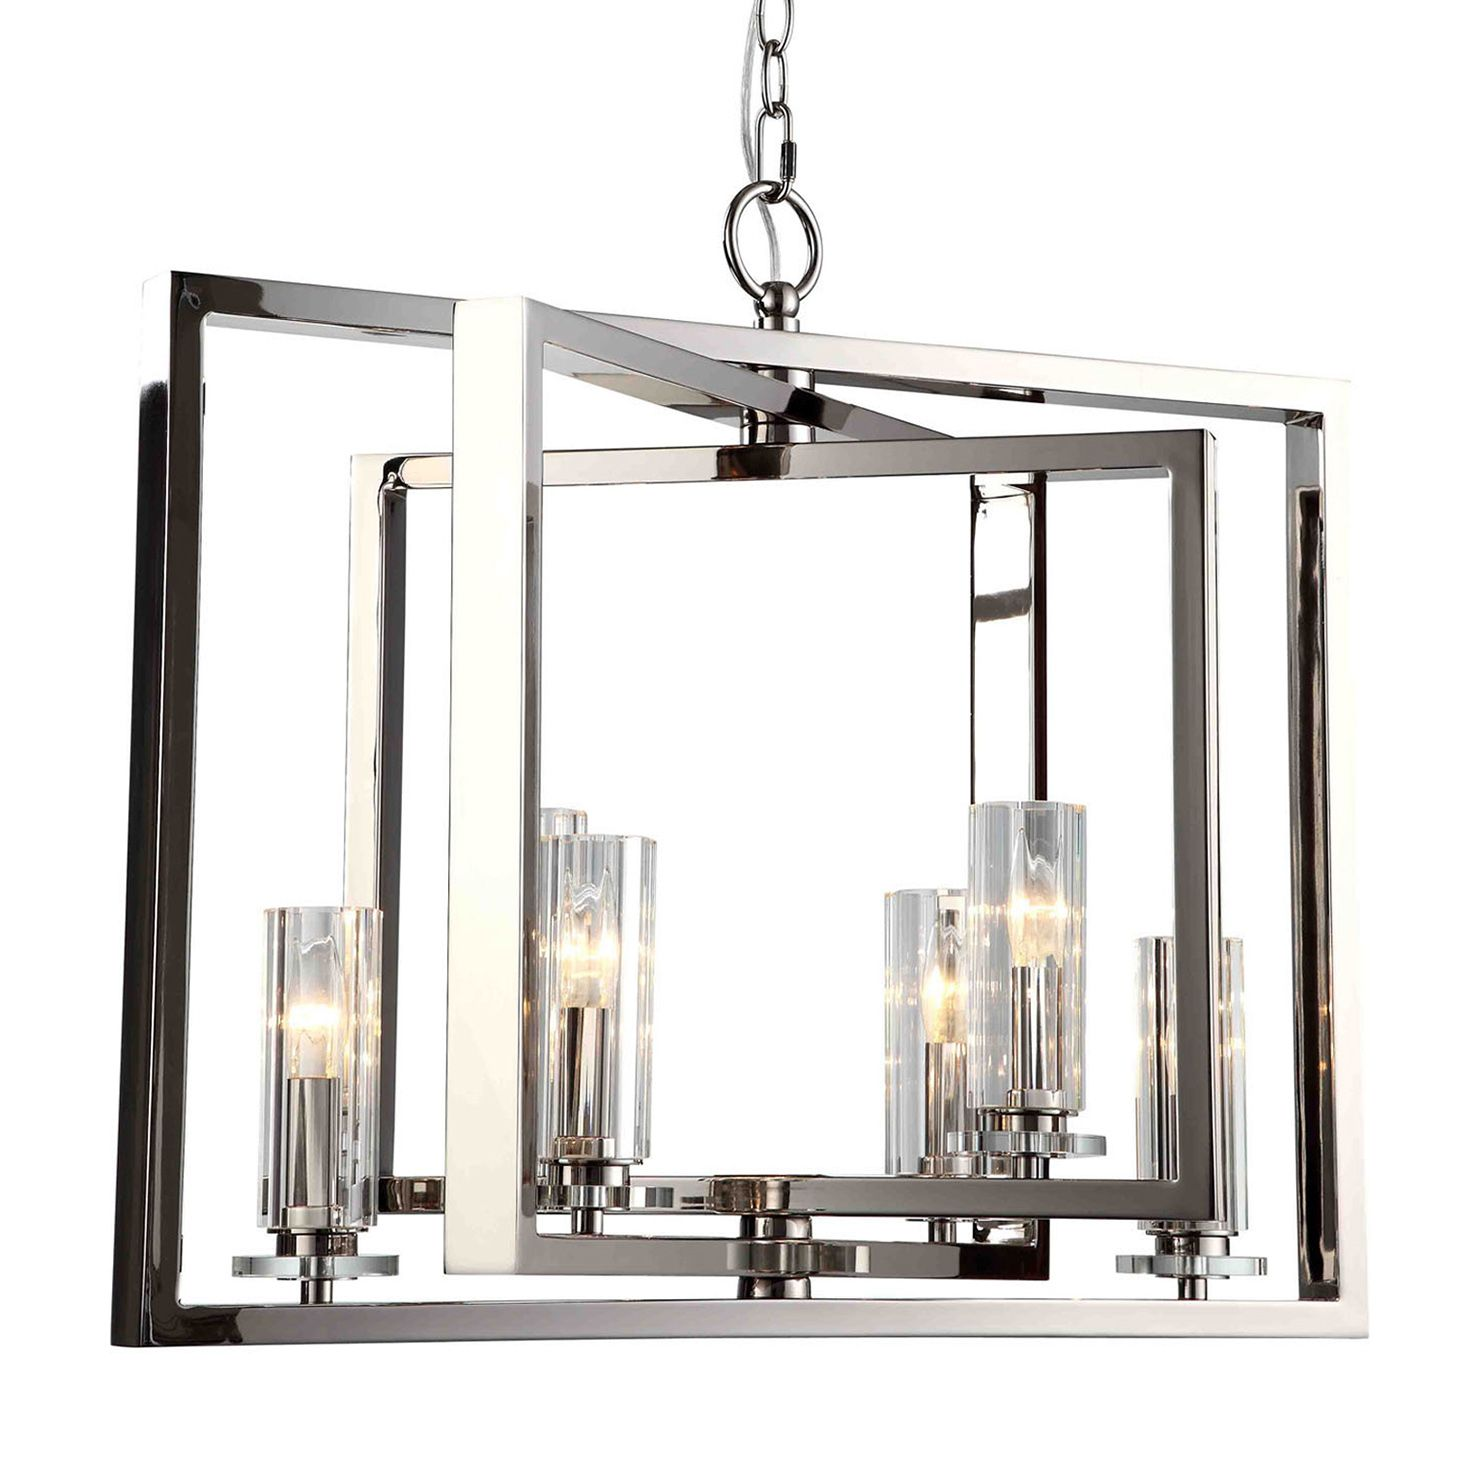 Saturn 6 arm angled nickel chandelier achica things pinterest buy rv astley saturn 6 arm angled chandelier online with houseologys price promise full rv astley collection with uk international shipping arubaitofo Image collections